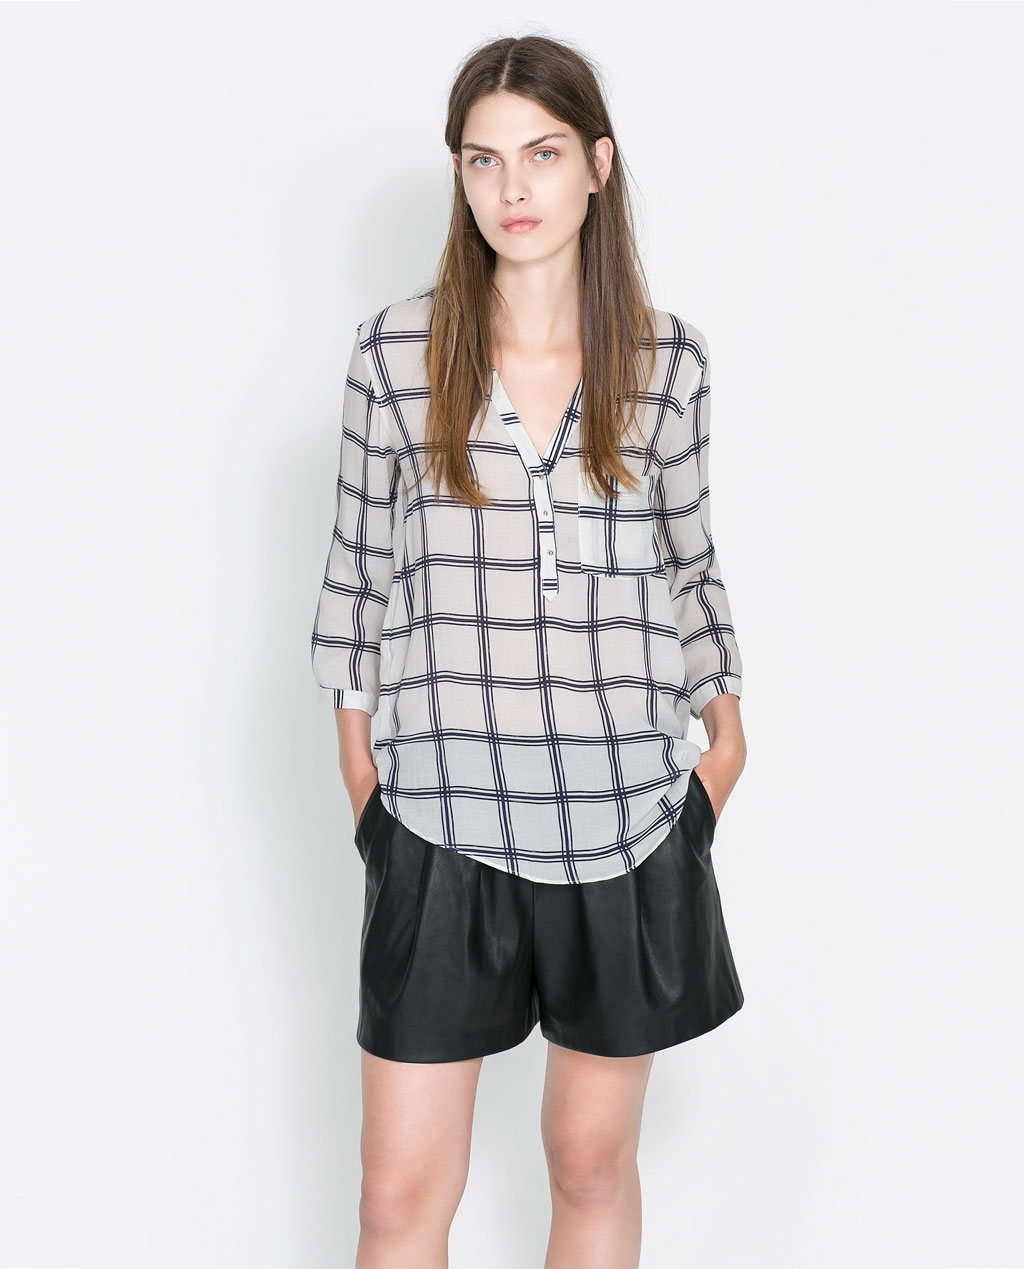 With white jeans or leather shorts, this Zara check-print blouse ($50) would be perfect.